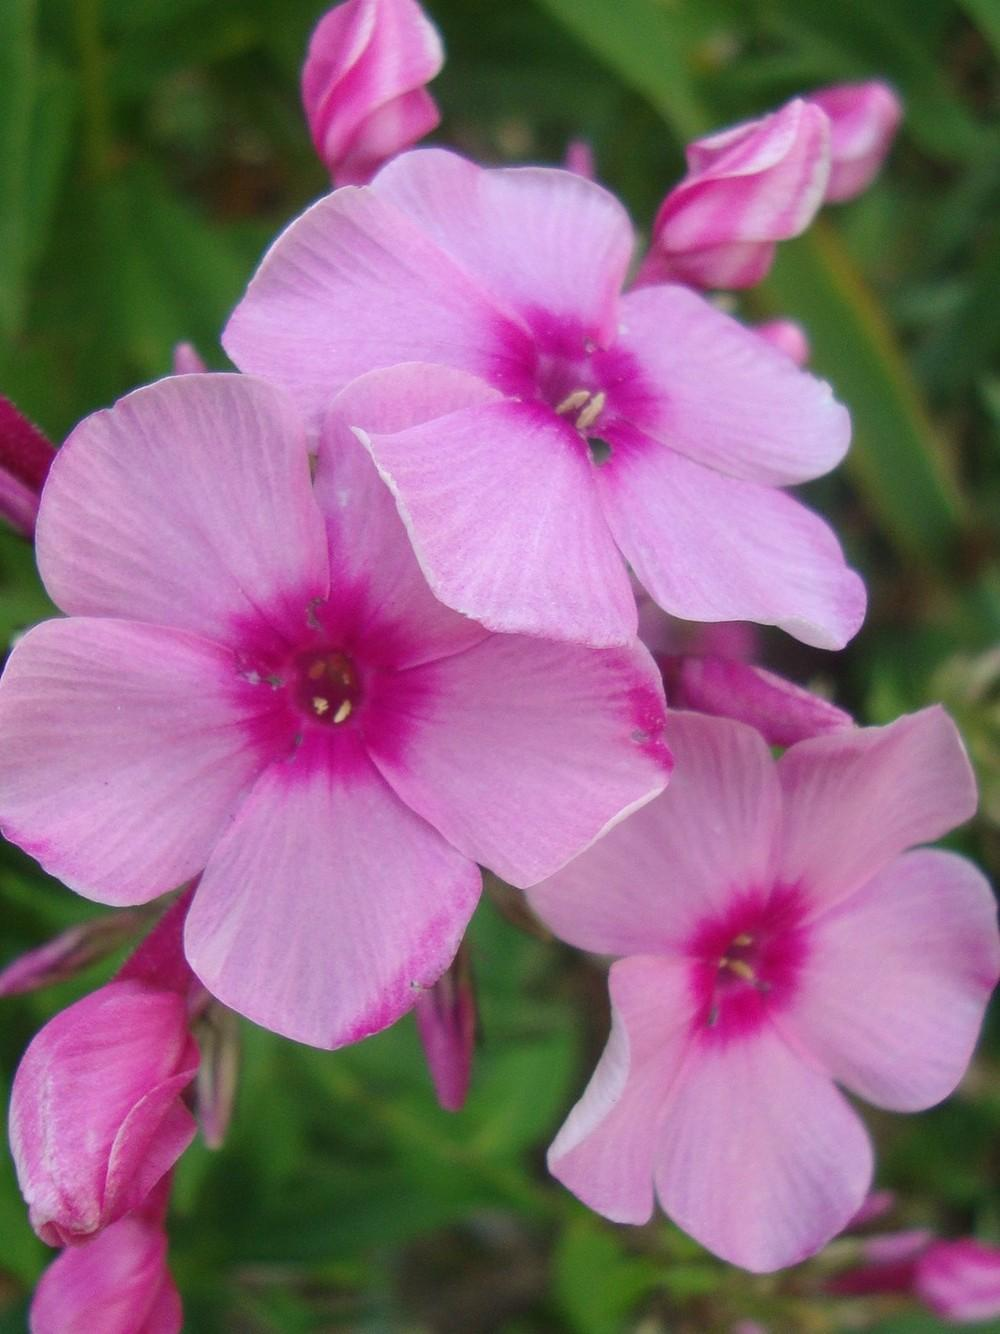 Photo of Phloxes (Phlox) uploaded by Paul2032